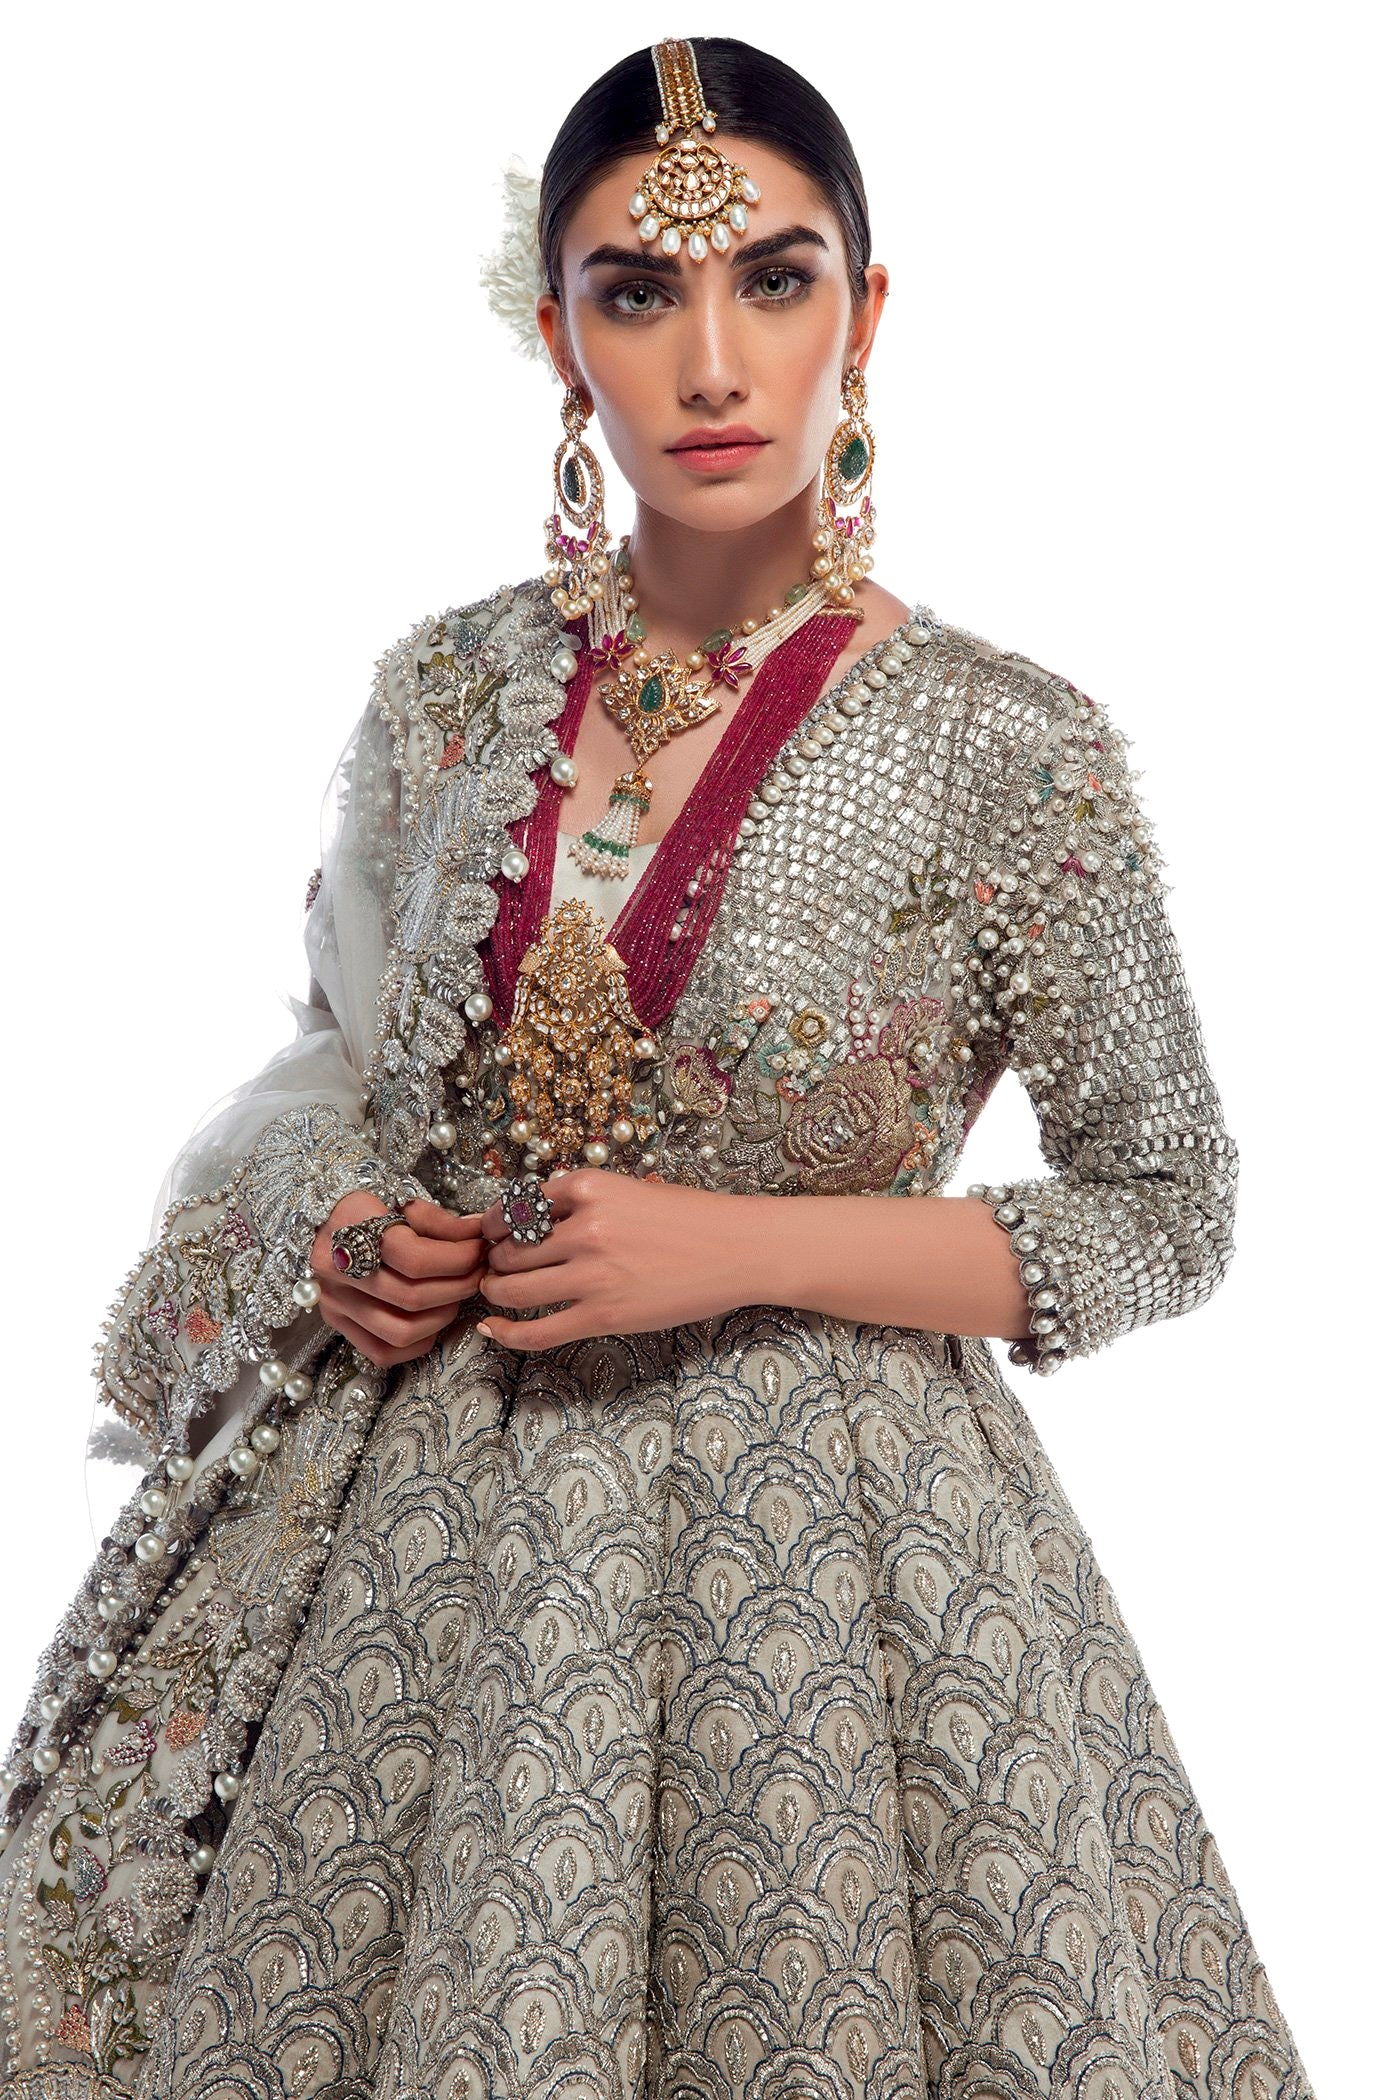 Designer Salwar kamiz for Indian Pakistani wedding 2020 online shopping